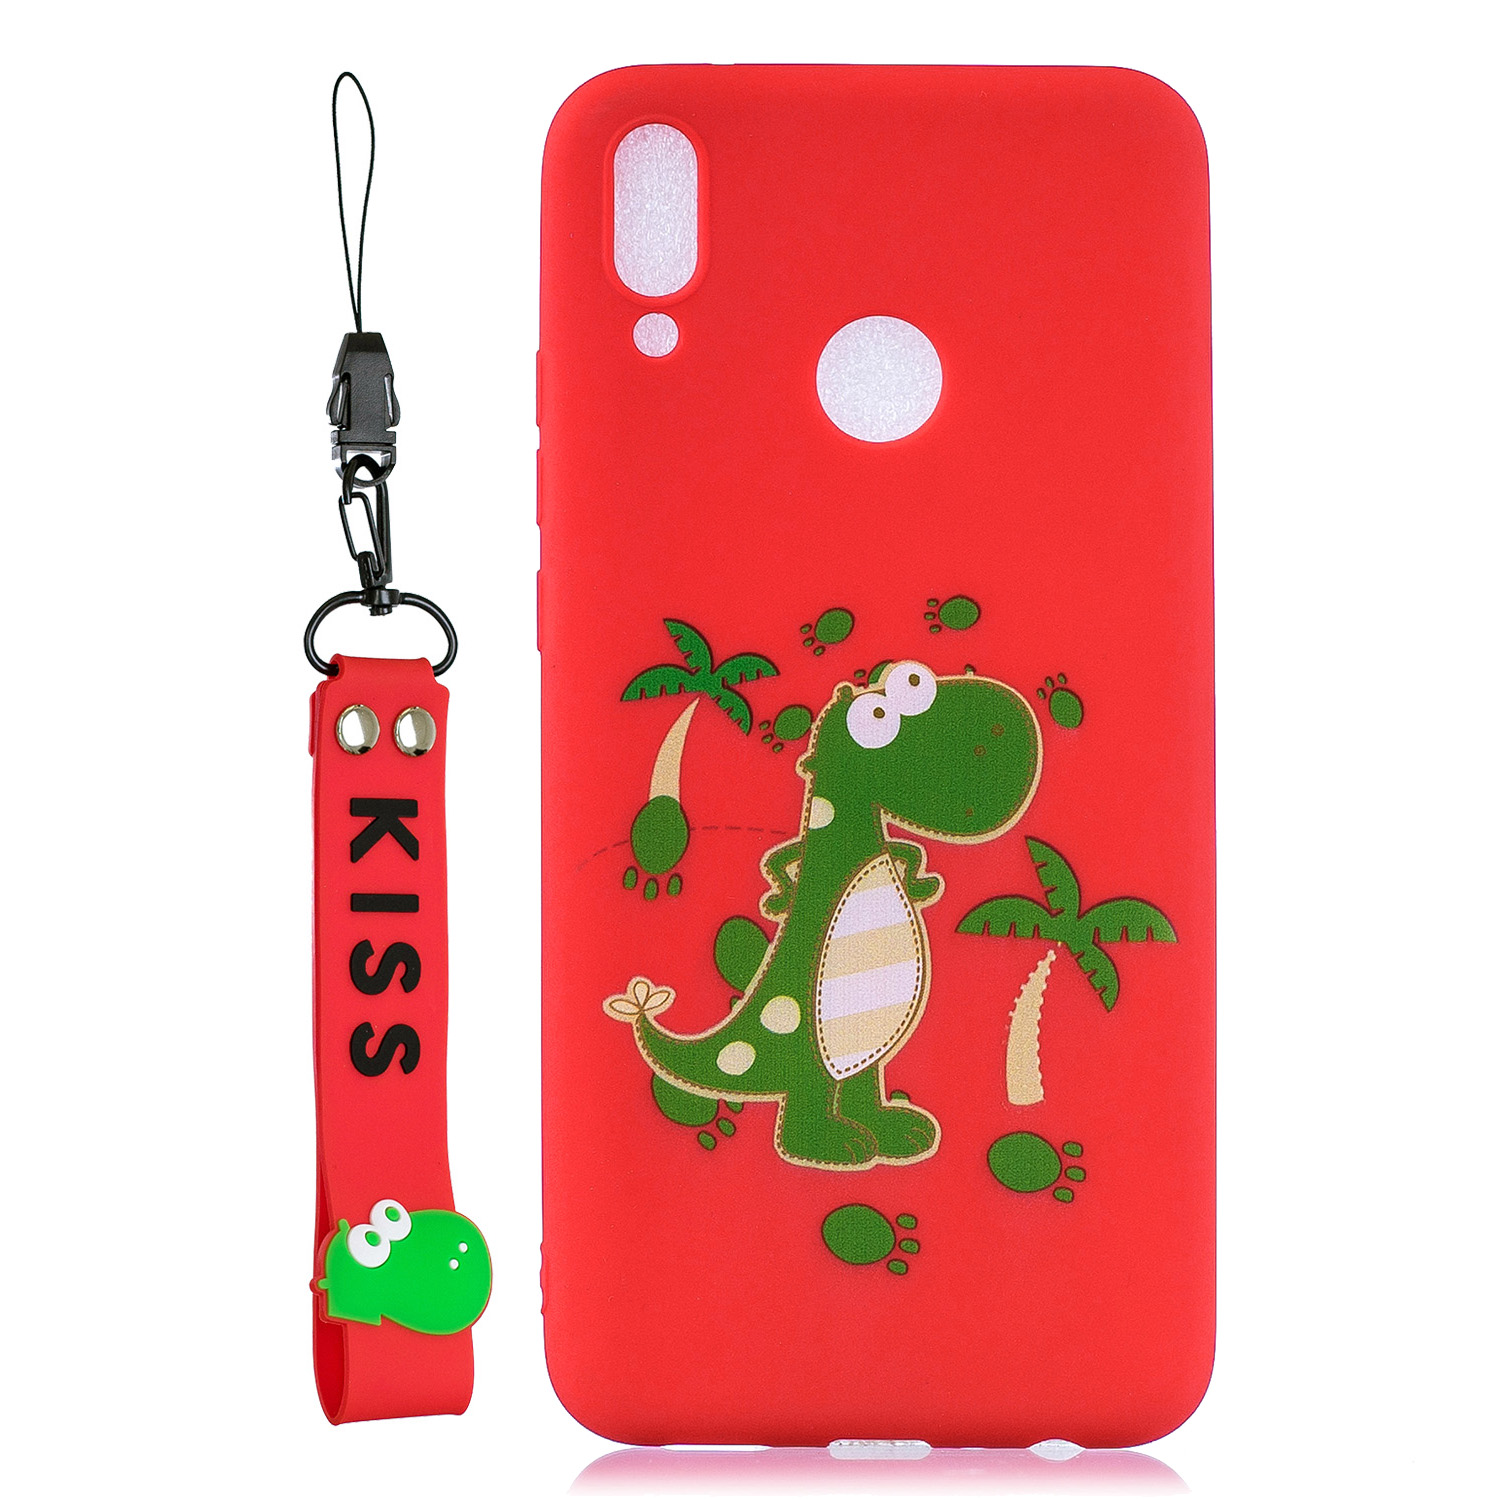 For HUAWEI Y9 2019 Cartoon Lovely Coloured Painted Soft TPU Back Cover Non-slip Shockproof Full Protective Case with Lanyard red